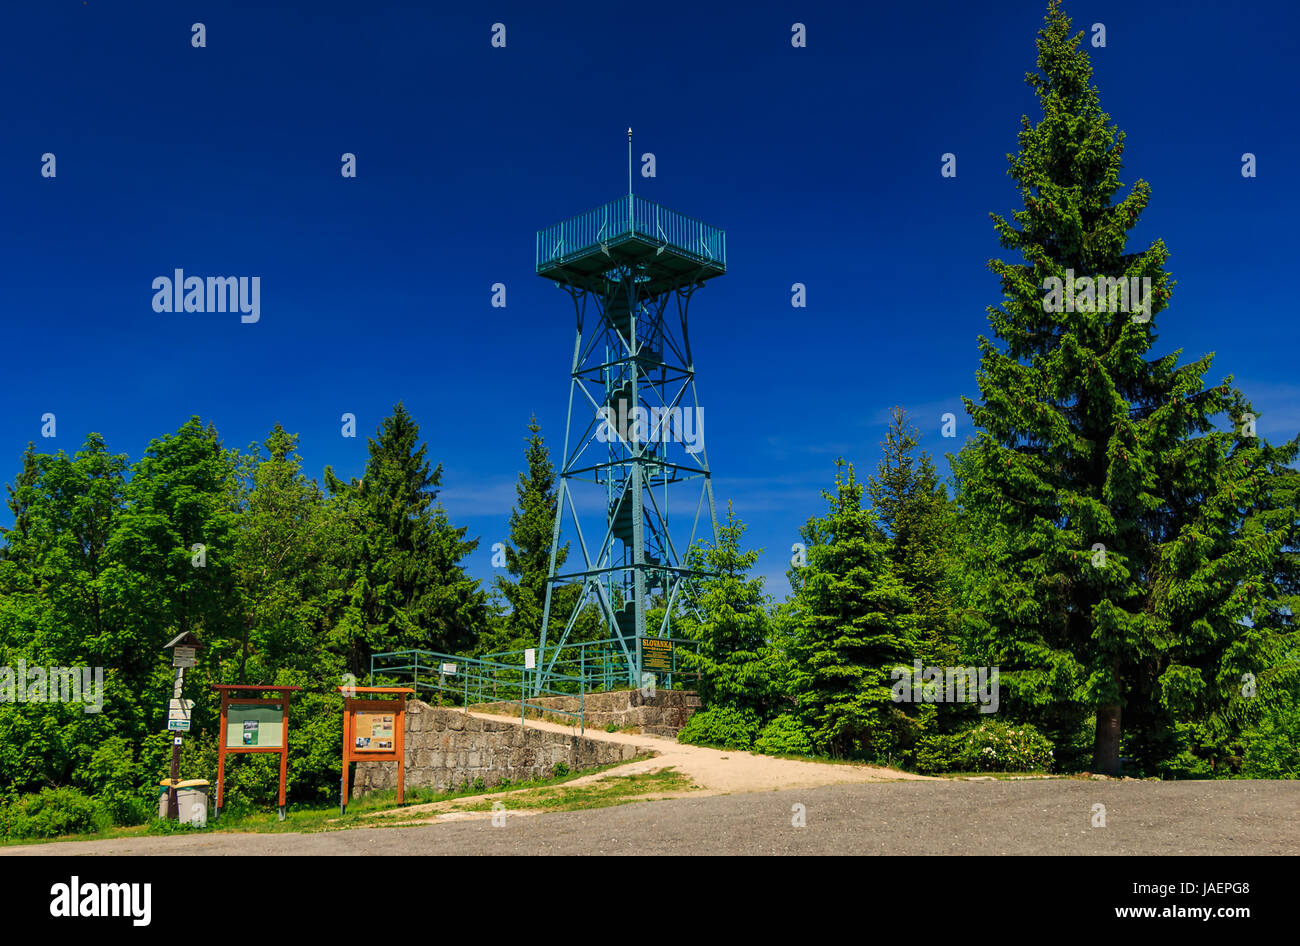 overall view of the Slovanka lookout tower - Stock Image